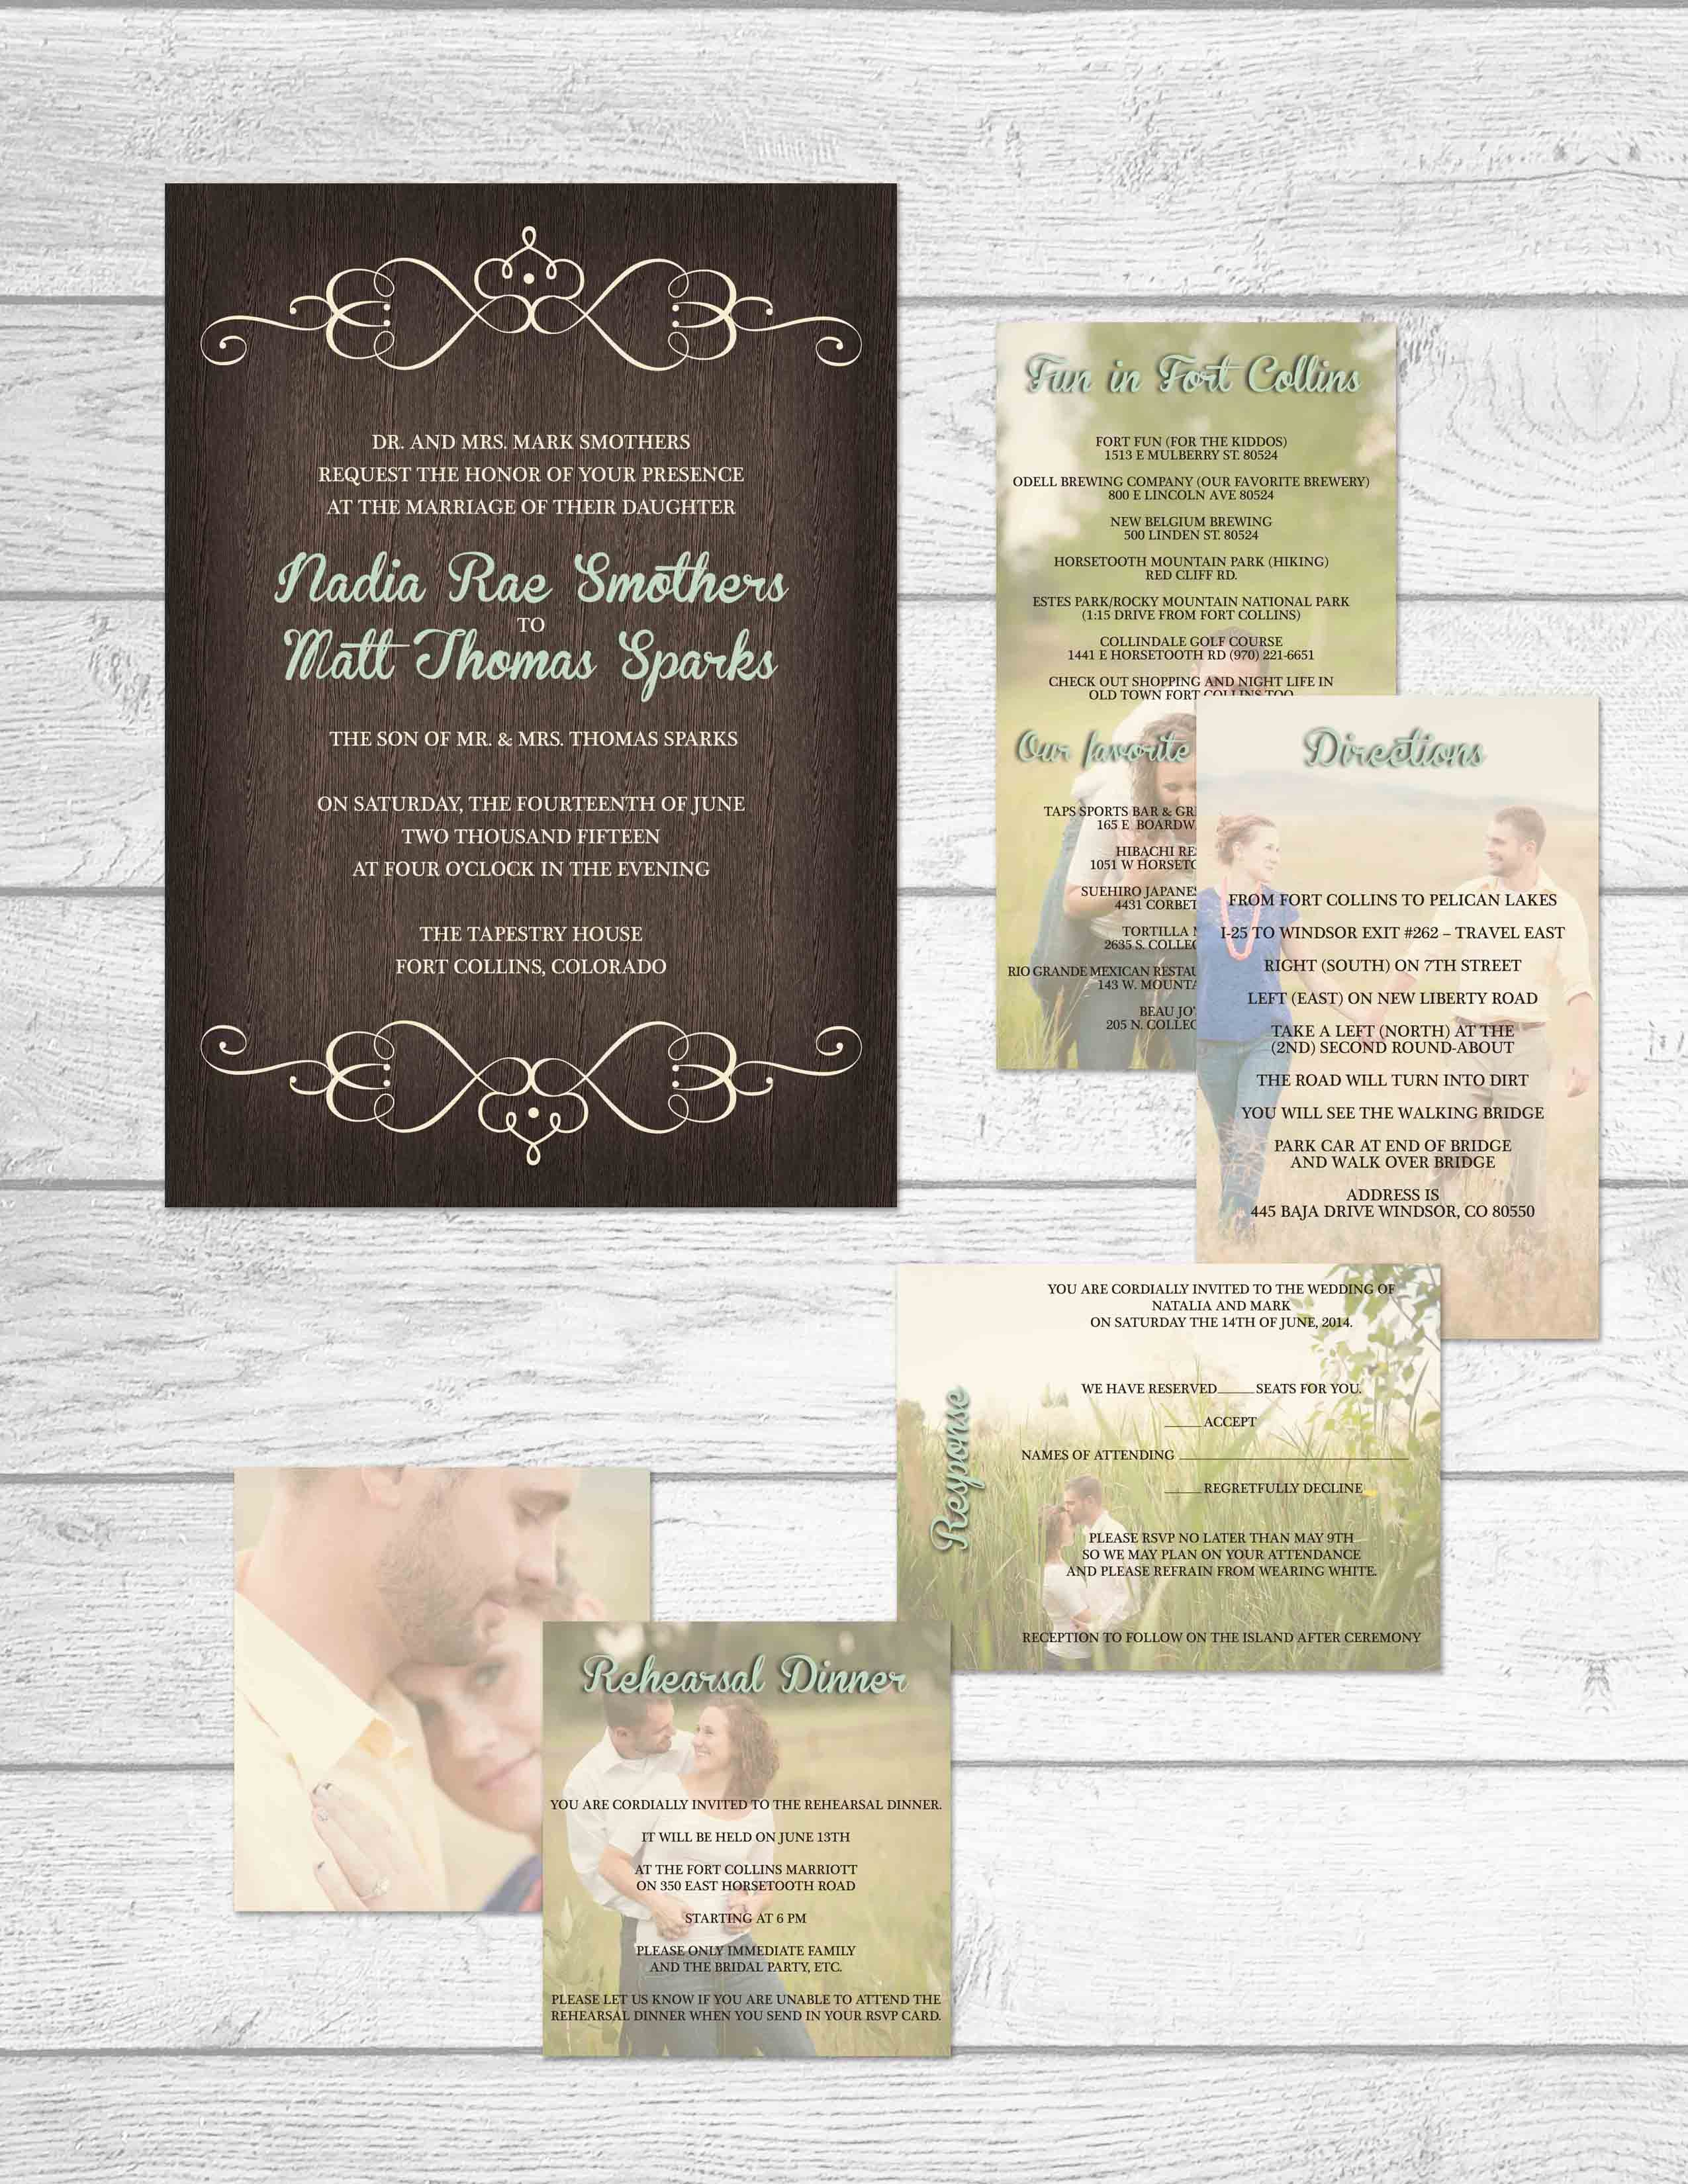 how to address wedding invitations inside envelope%0A Wedding invitations